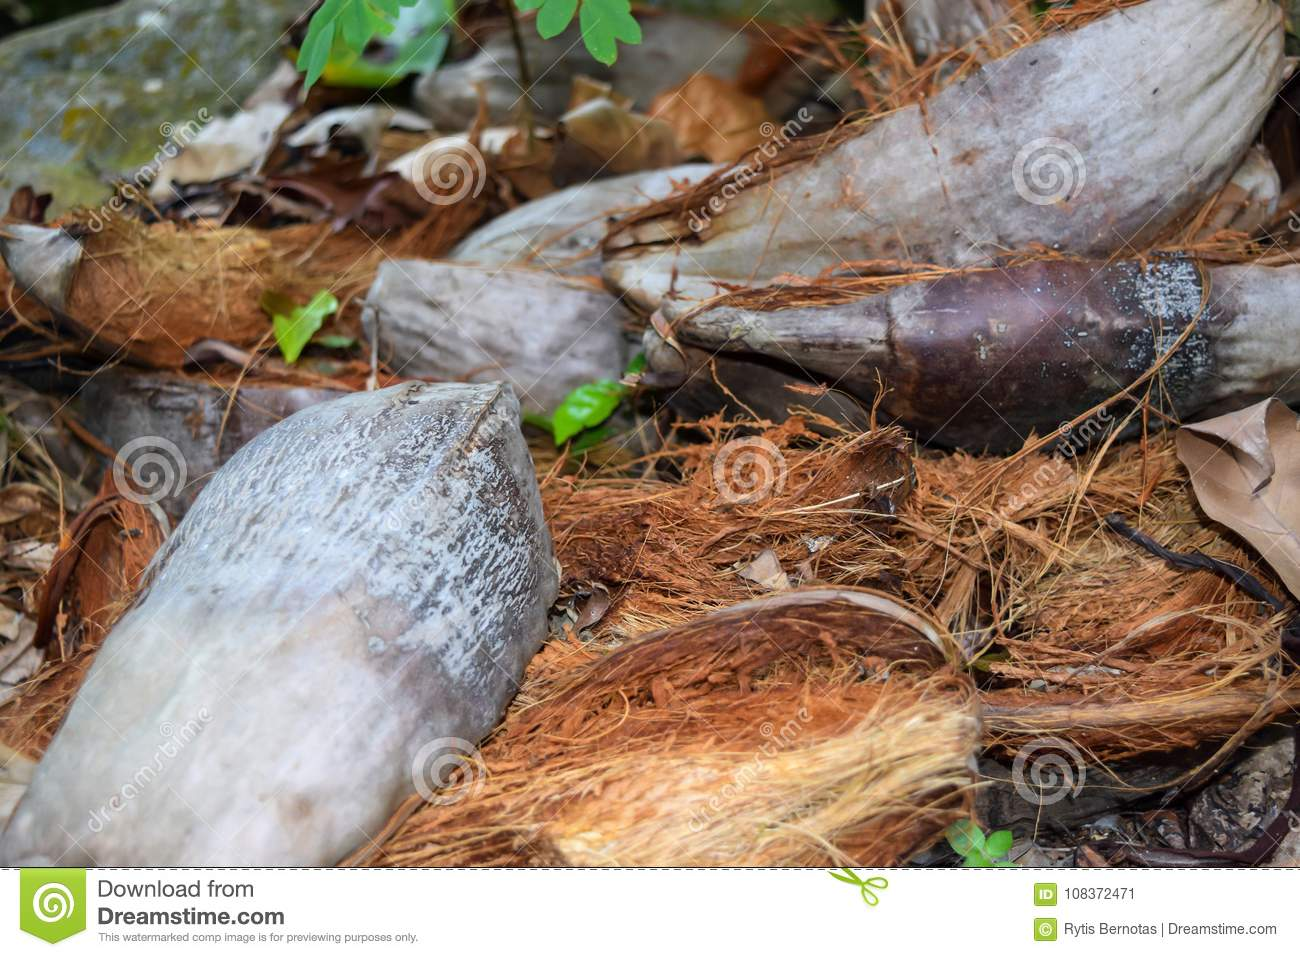 Cut up Coconut Shell on the Ground